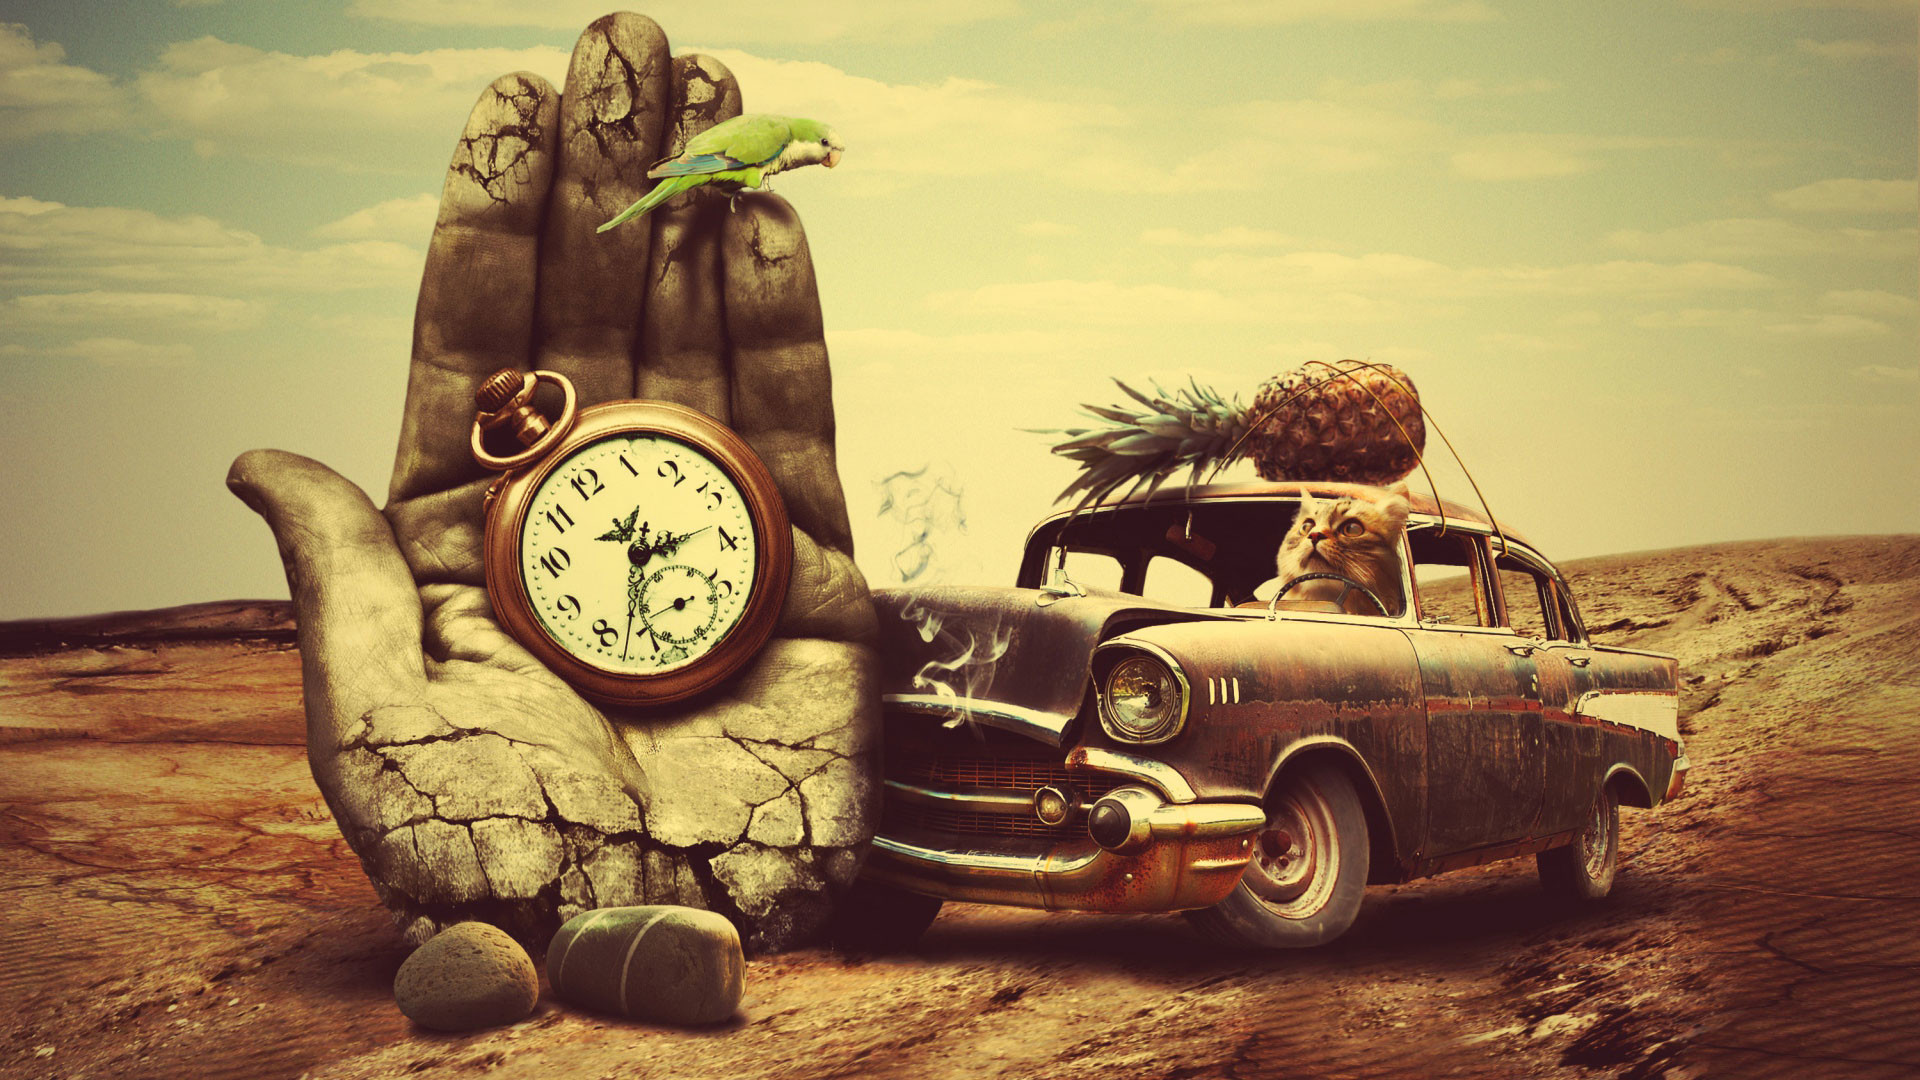 1920x1080 Hd Pics Photos Attractive Creativity Hand Time Clock Old Car Quality Desktop Background Wallpaper